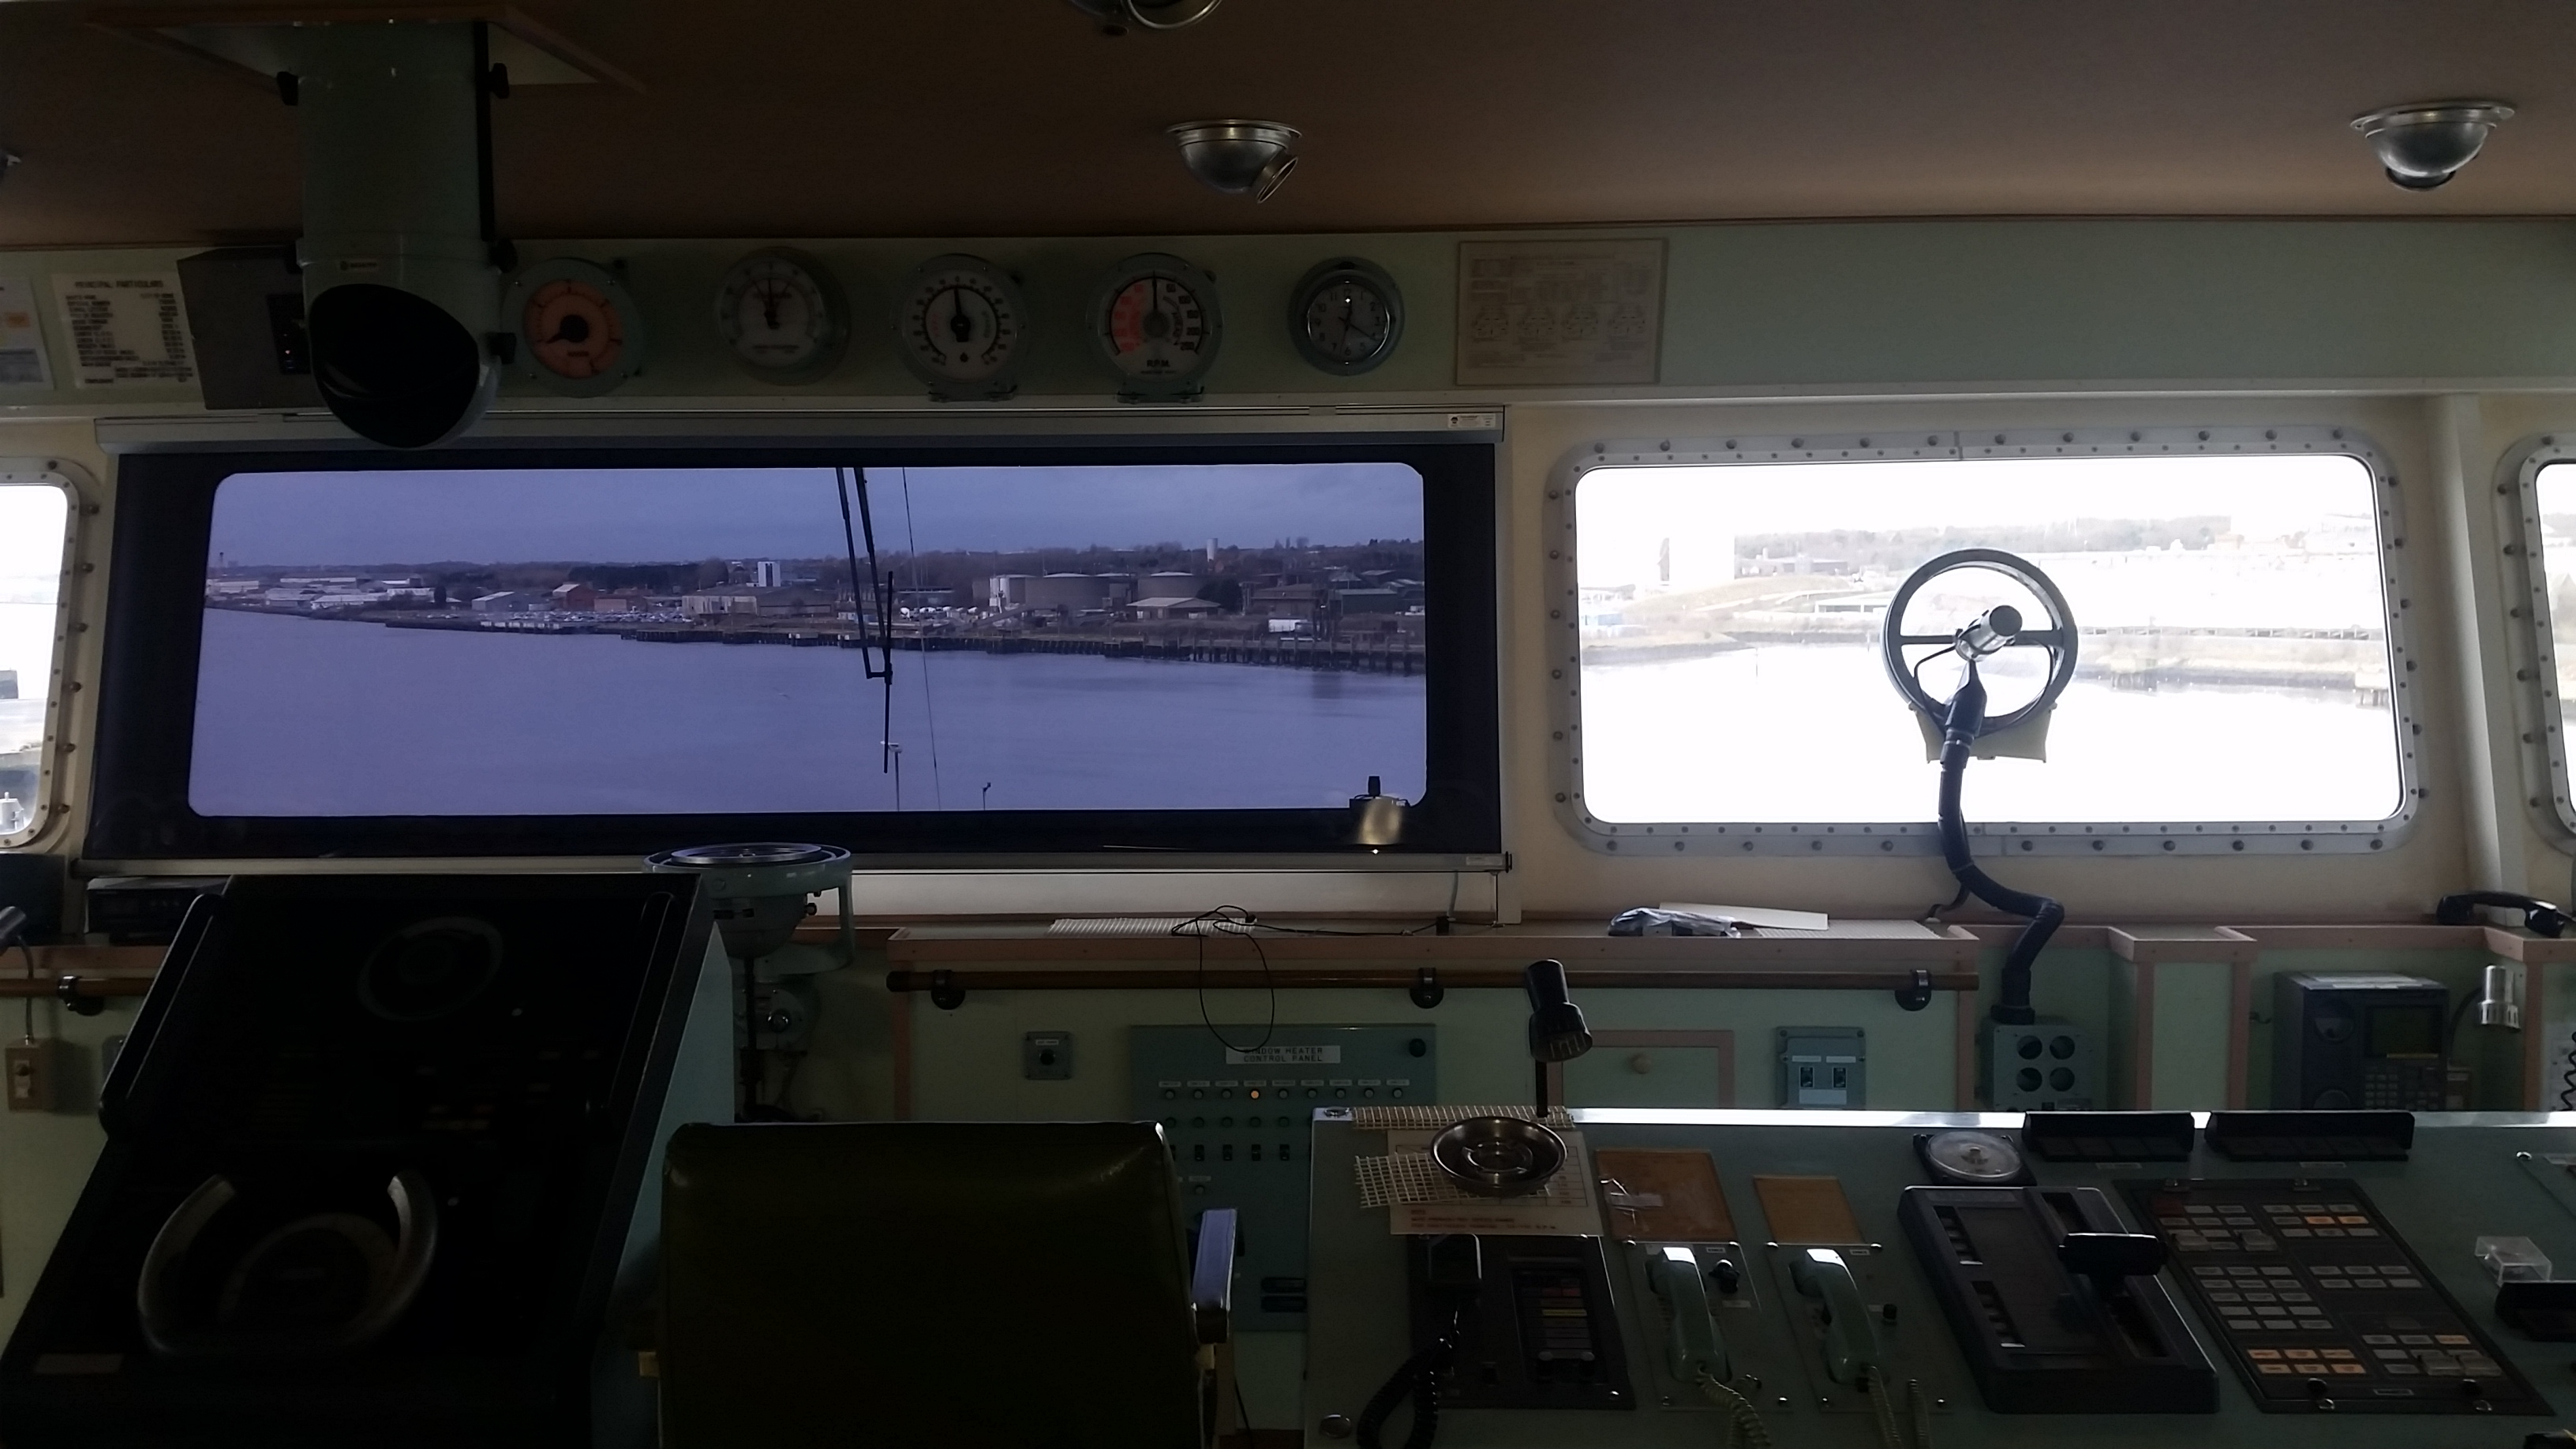 HEAT AND GLARE – A REAL ISSUE FOR NAVIGATION BRIDGE CREW